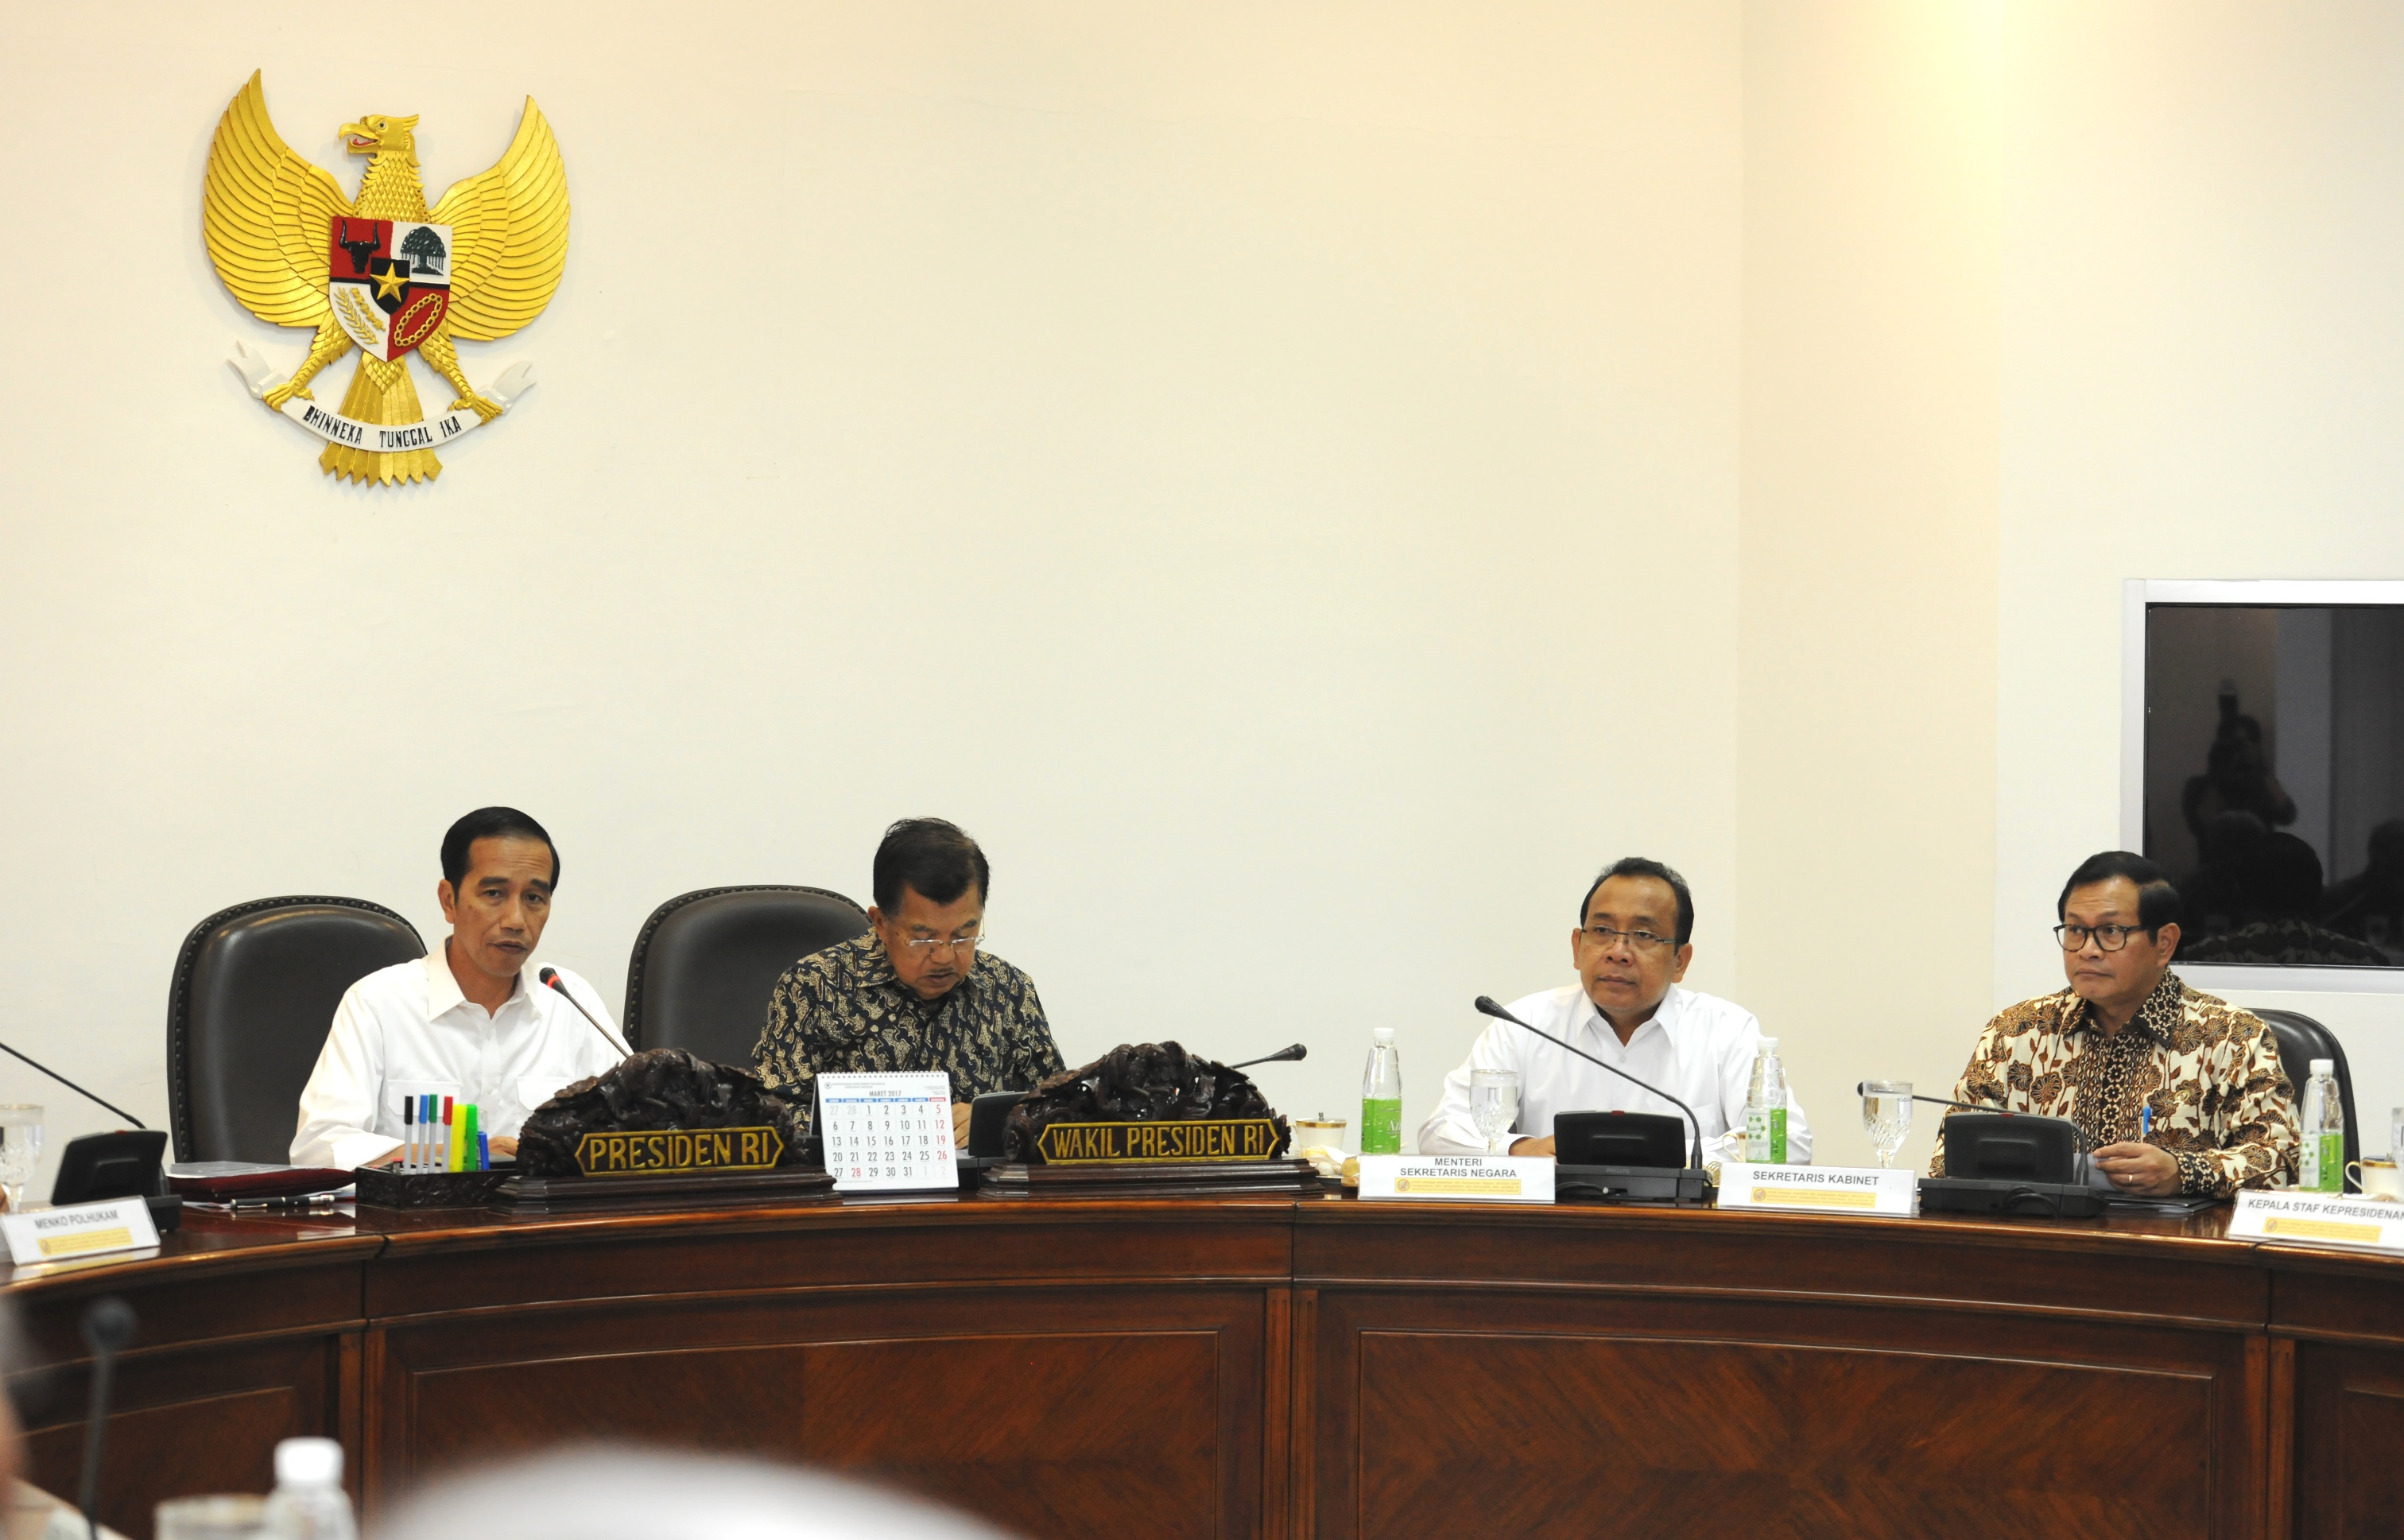 President Jokowi accompanied by Vice President Jusuf Kalla leads the Limited Meeting on LRT construction, at the Presidential Office, Jakarta, Monday (6/1) afternoon. (Photo: PR/Jay)